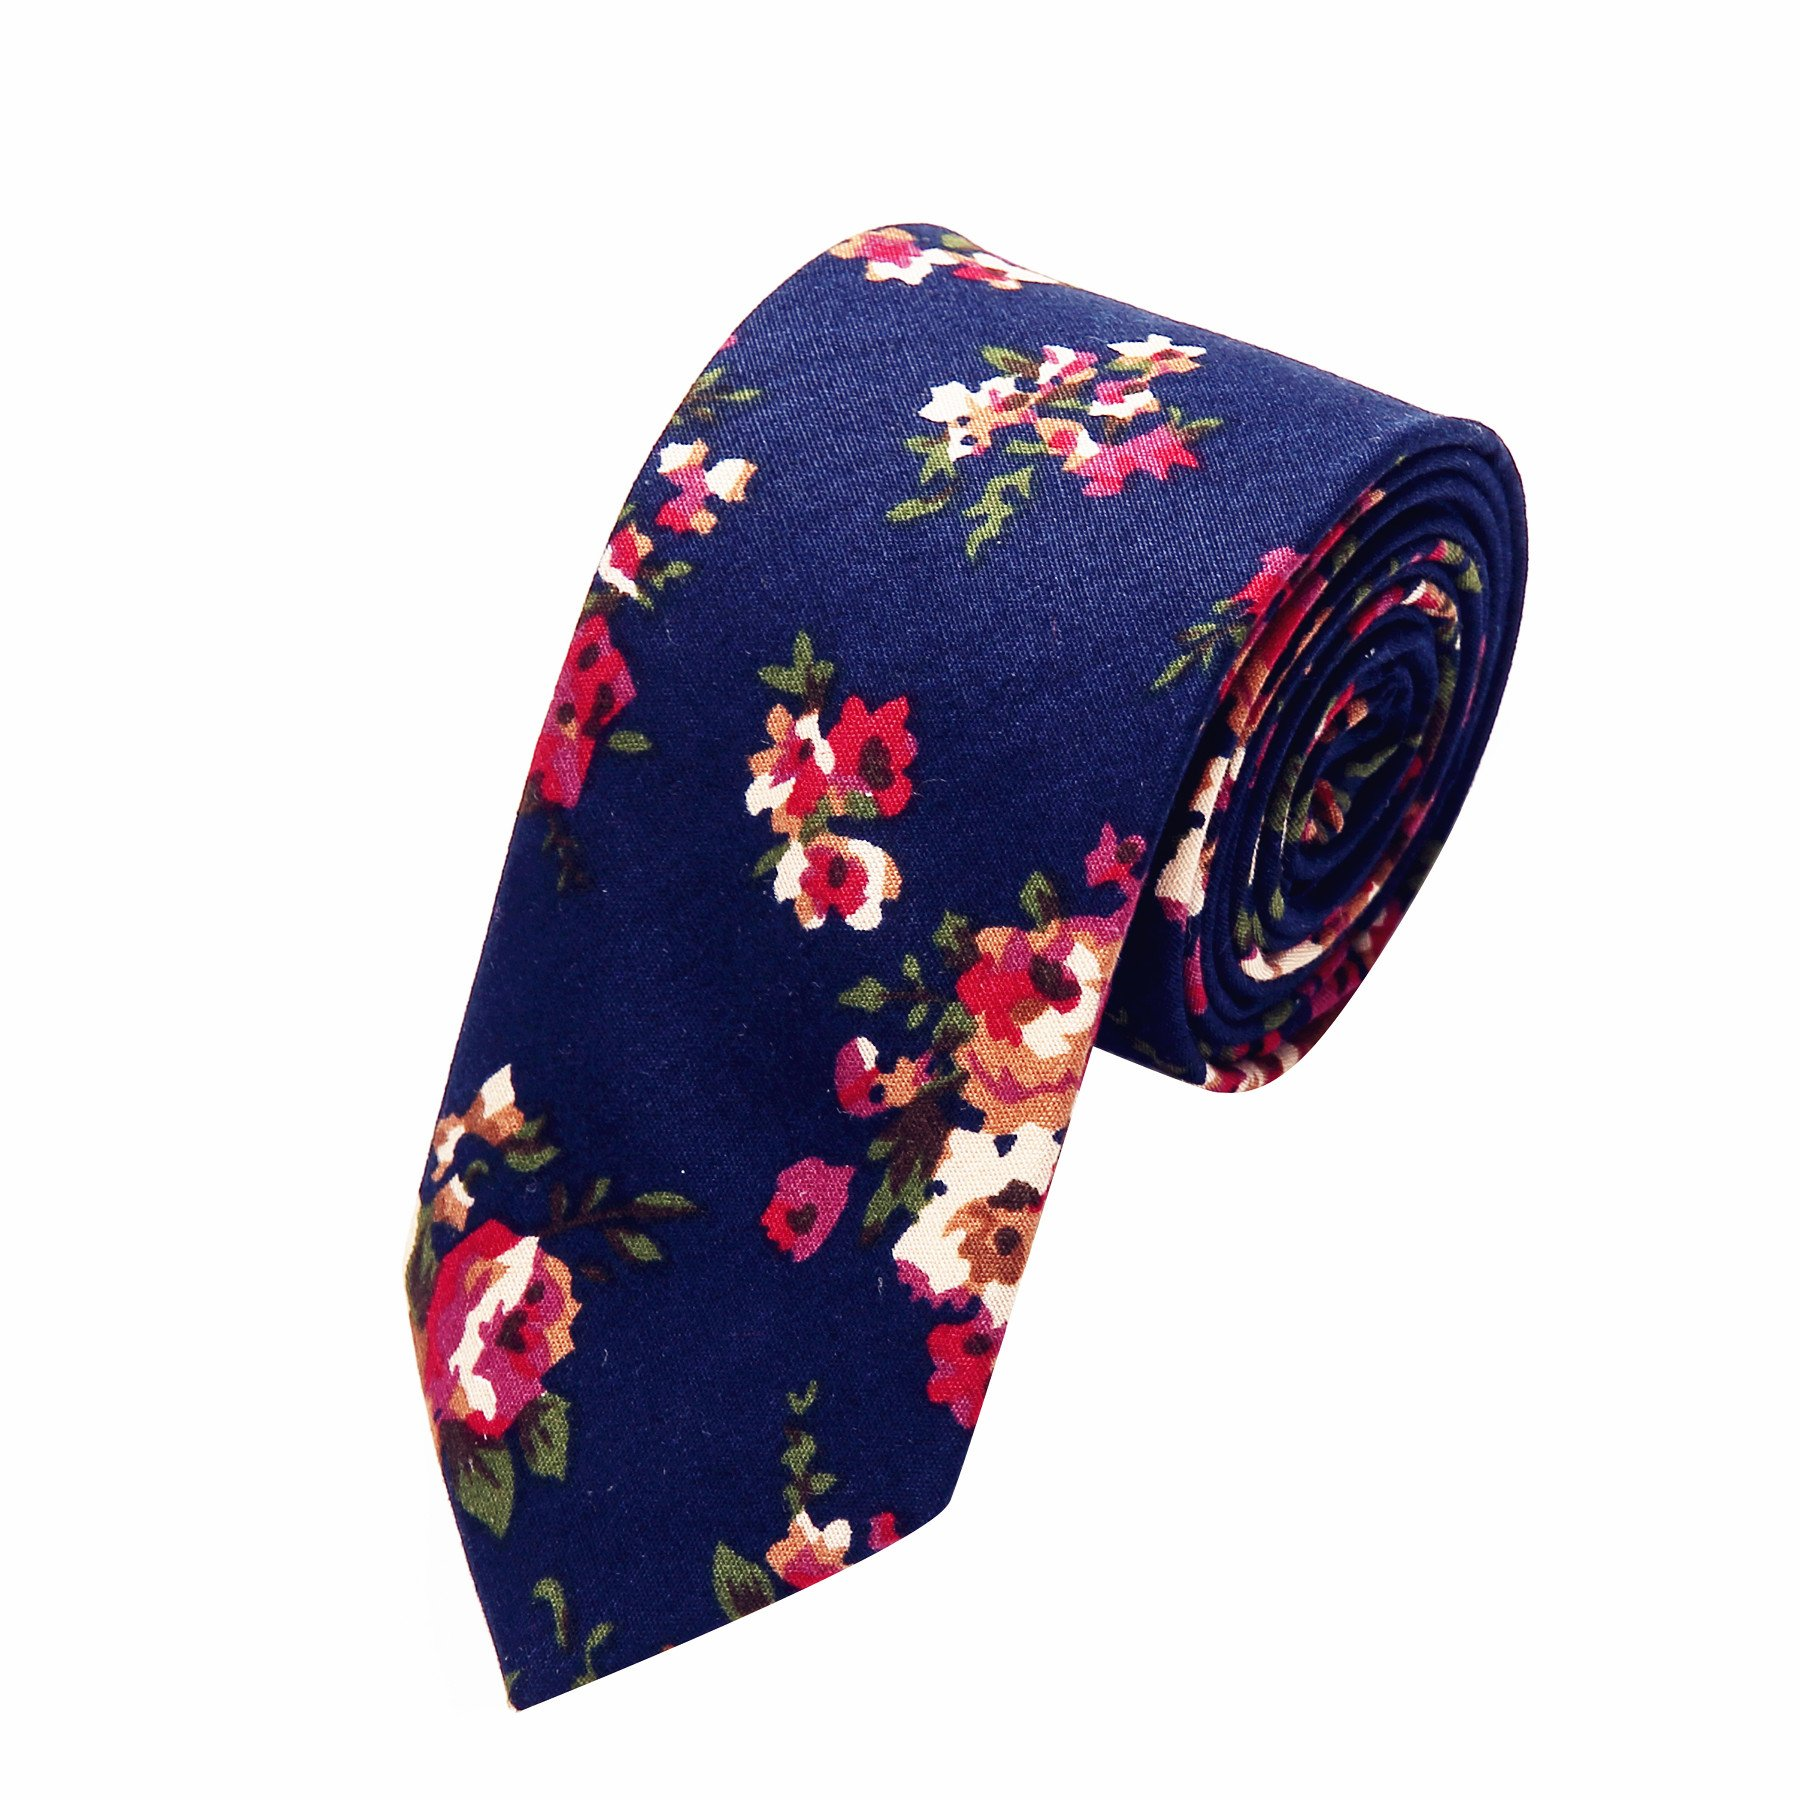 Ausky 4 Packs Cotton Floral Skinny Neckties for Men Boys in Different Flower (Floral B) by AUSKY (Image #3)